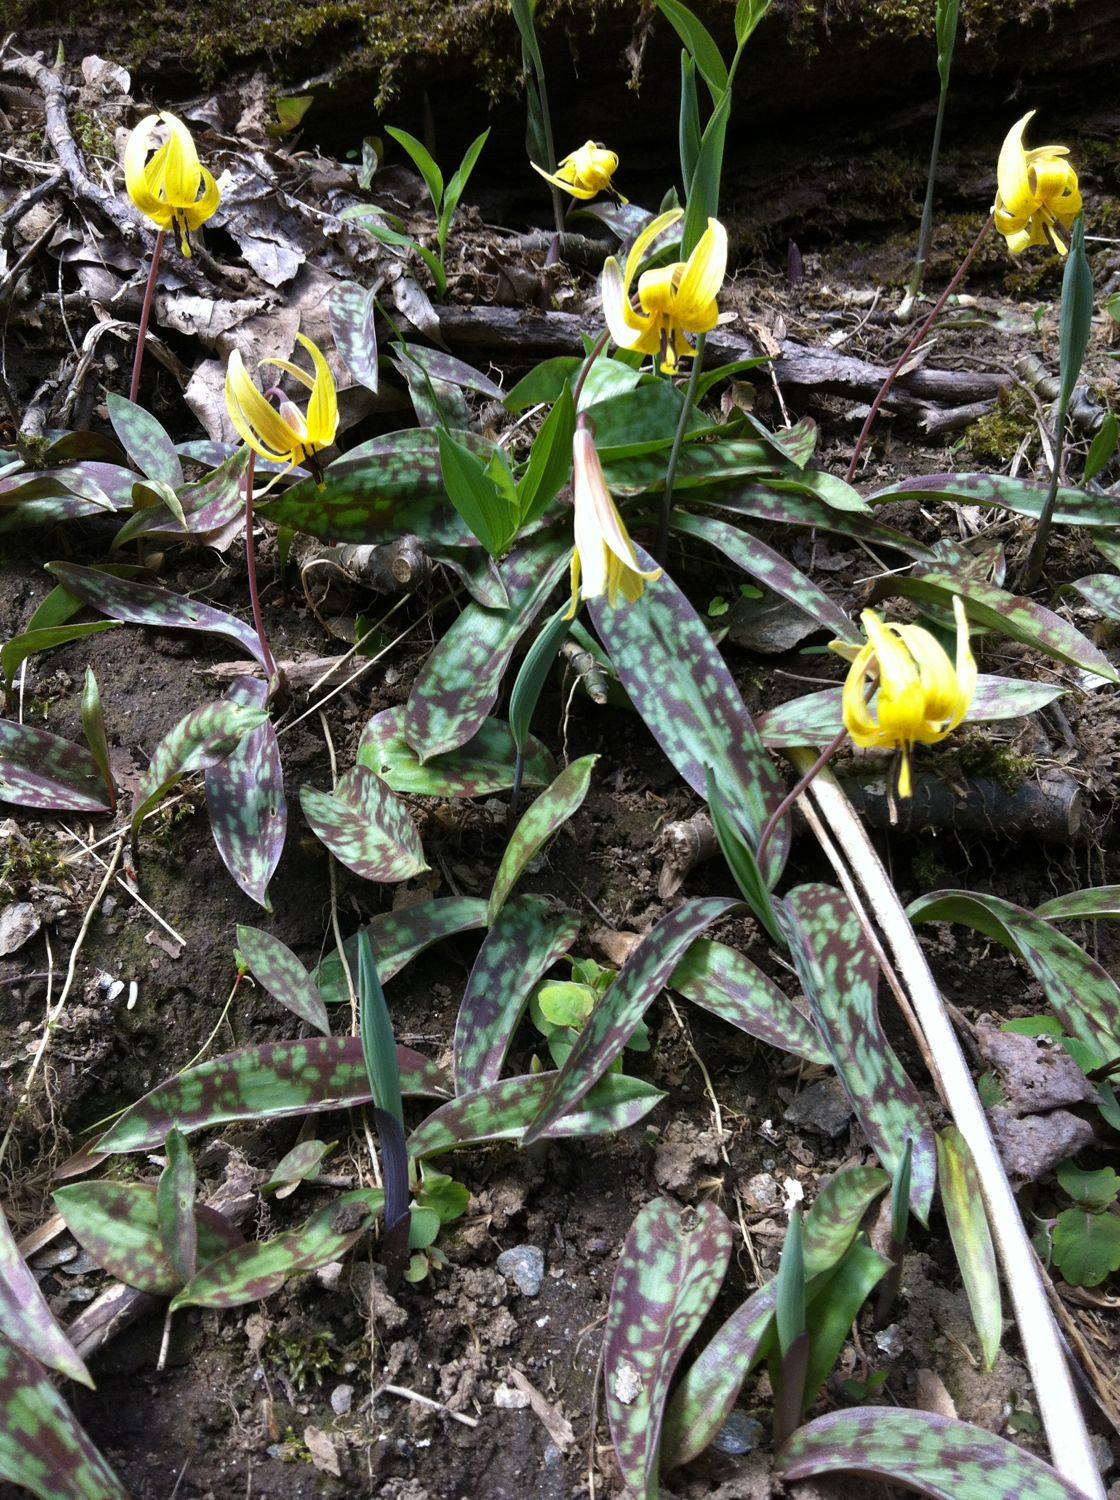 Yellow trout-lily